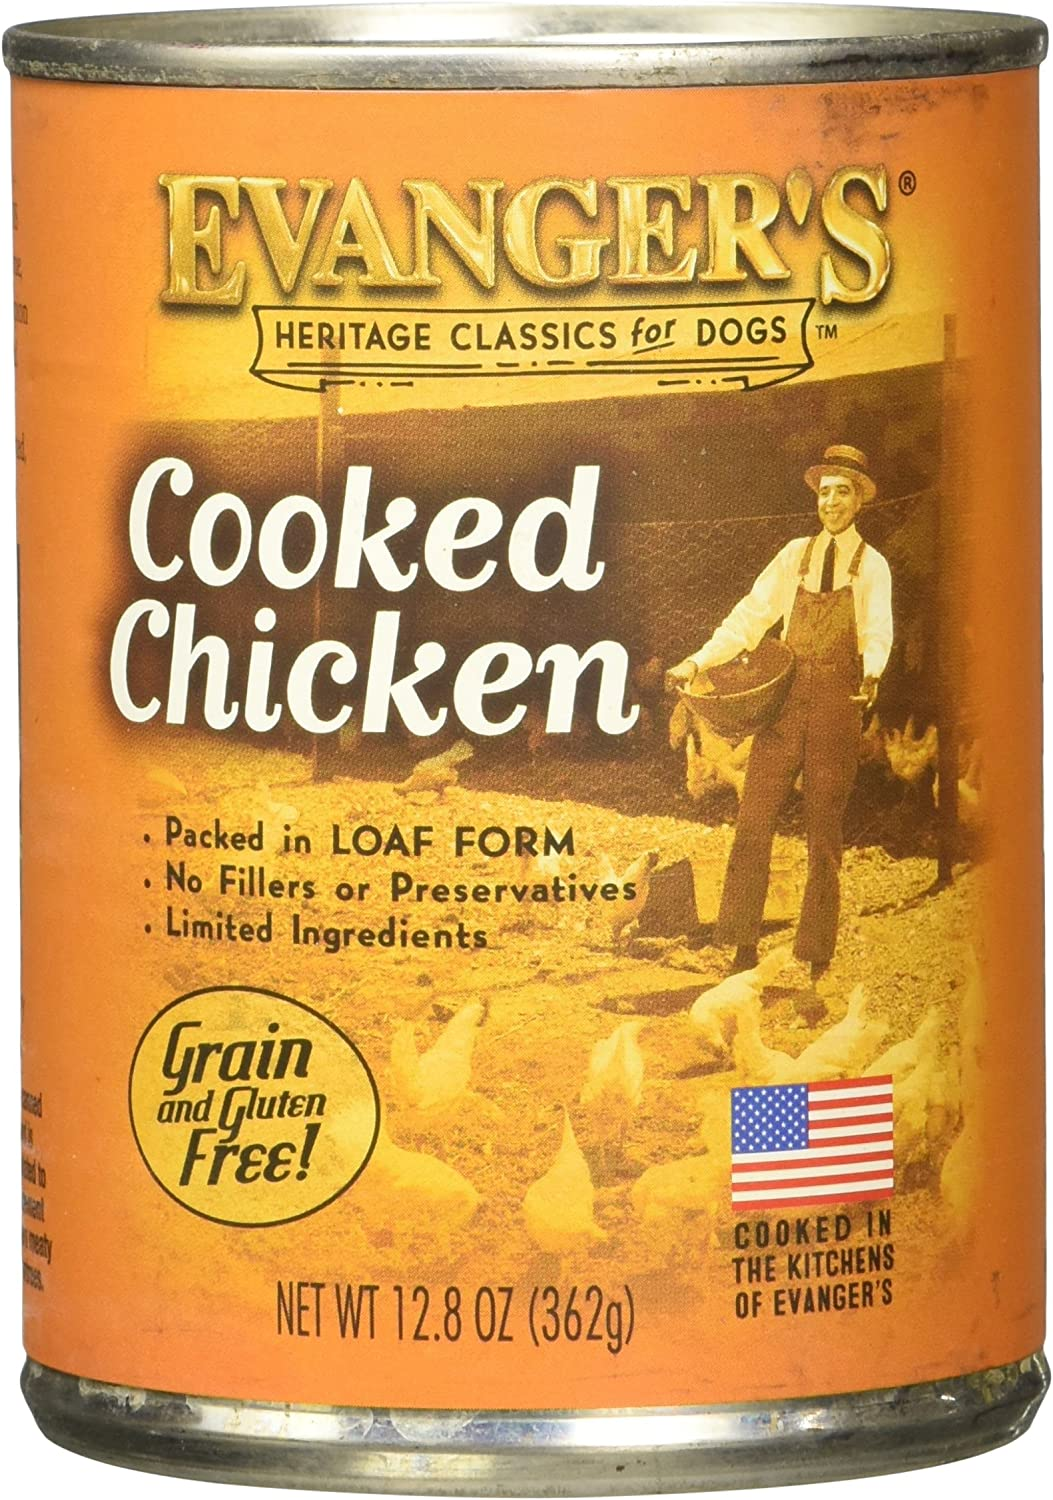 Evanger s All Natural Classic Cooked Chicken Canned Dog Food 12.8 oz. 12 in case